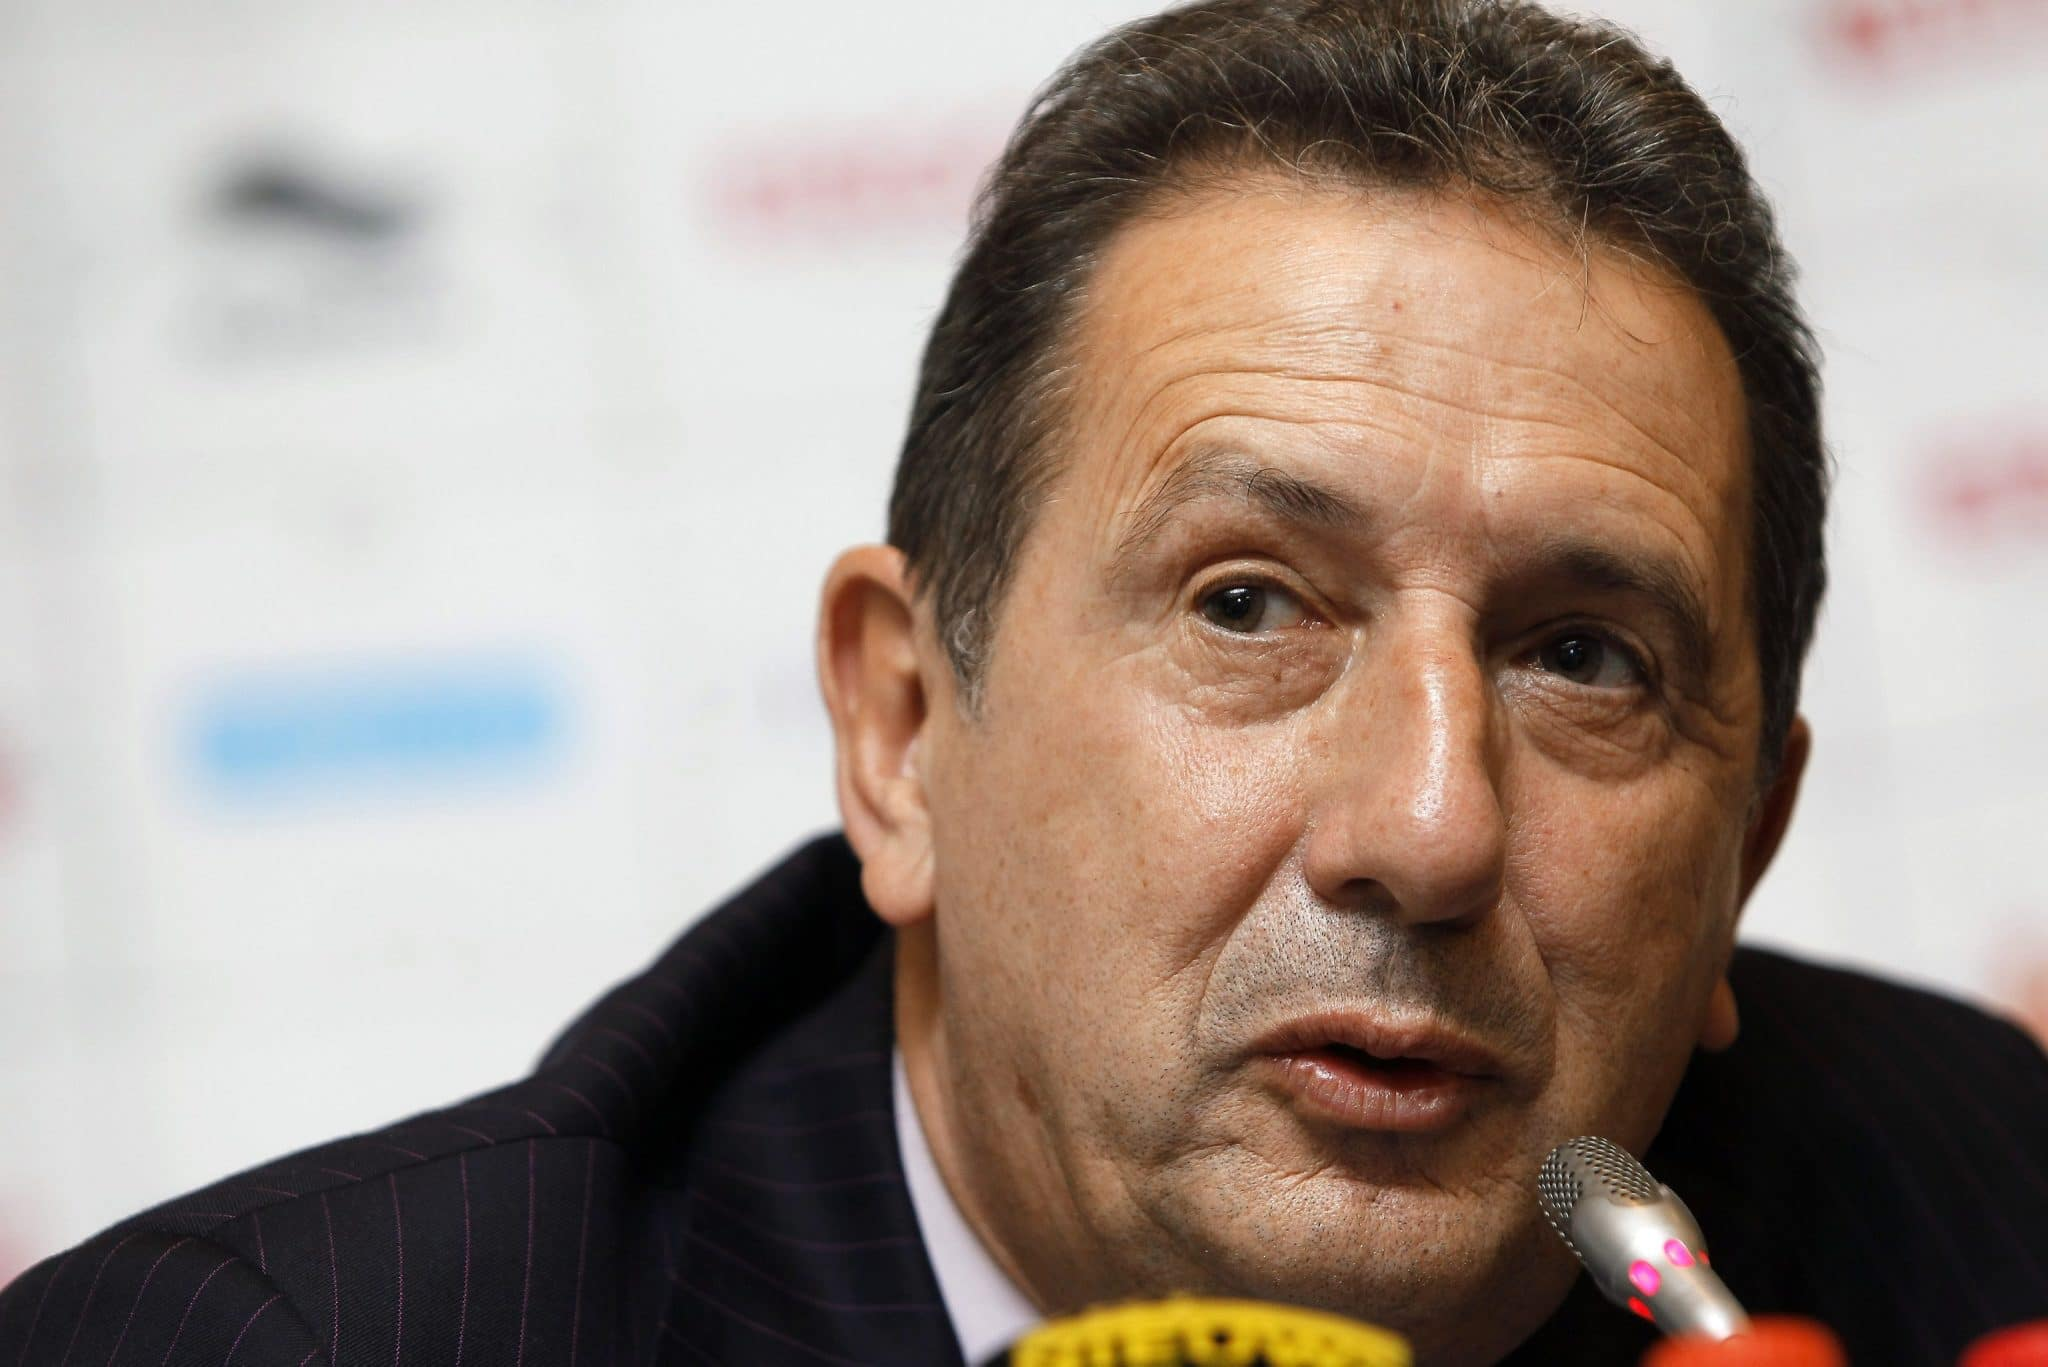 Algeria Coach, Leekens Targets Decent Result Against Nigeria